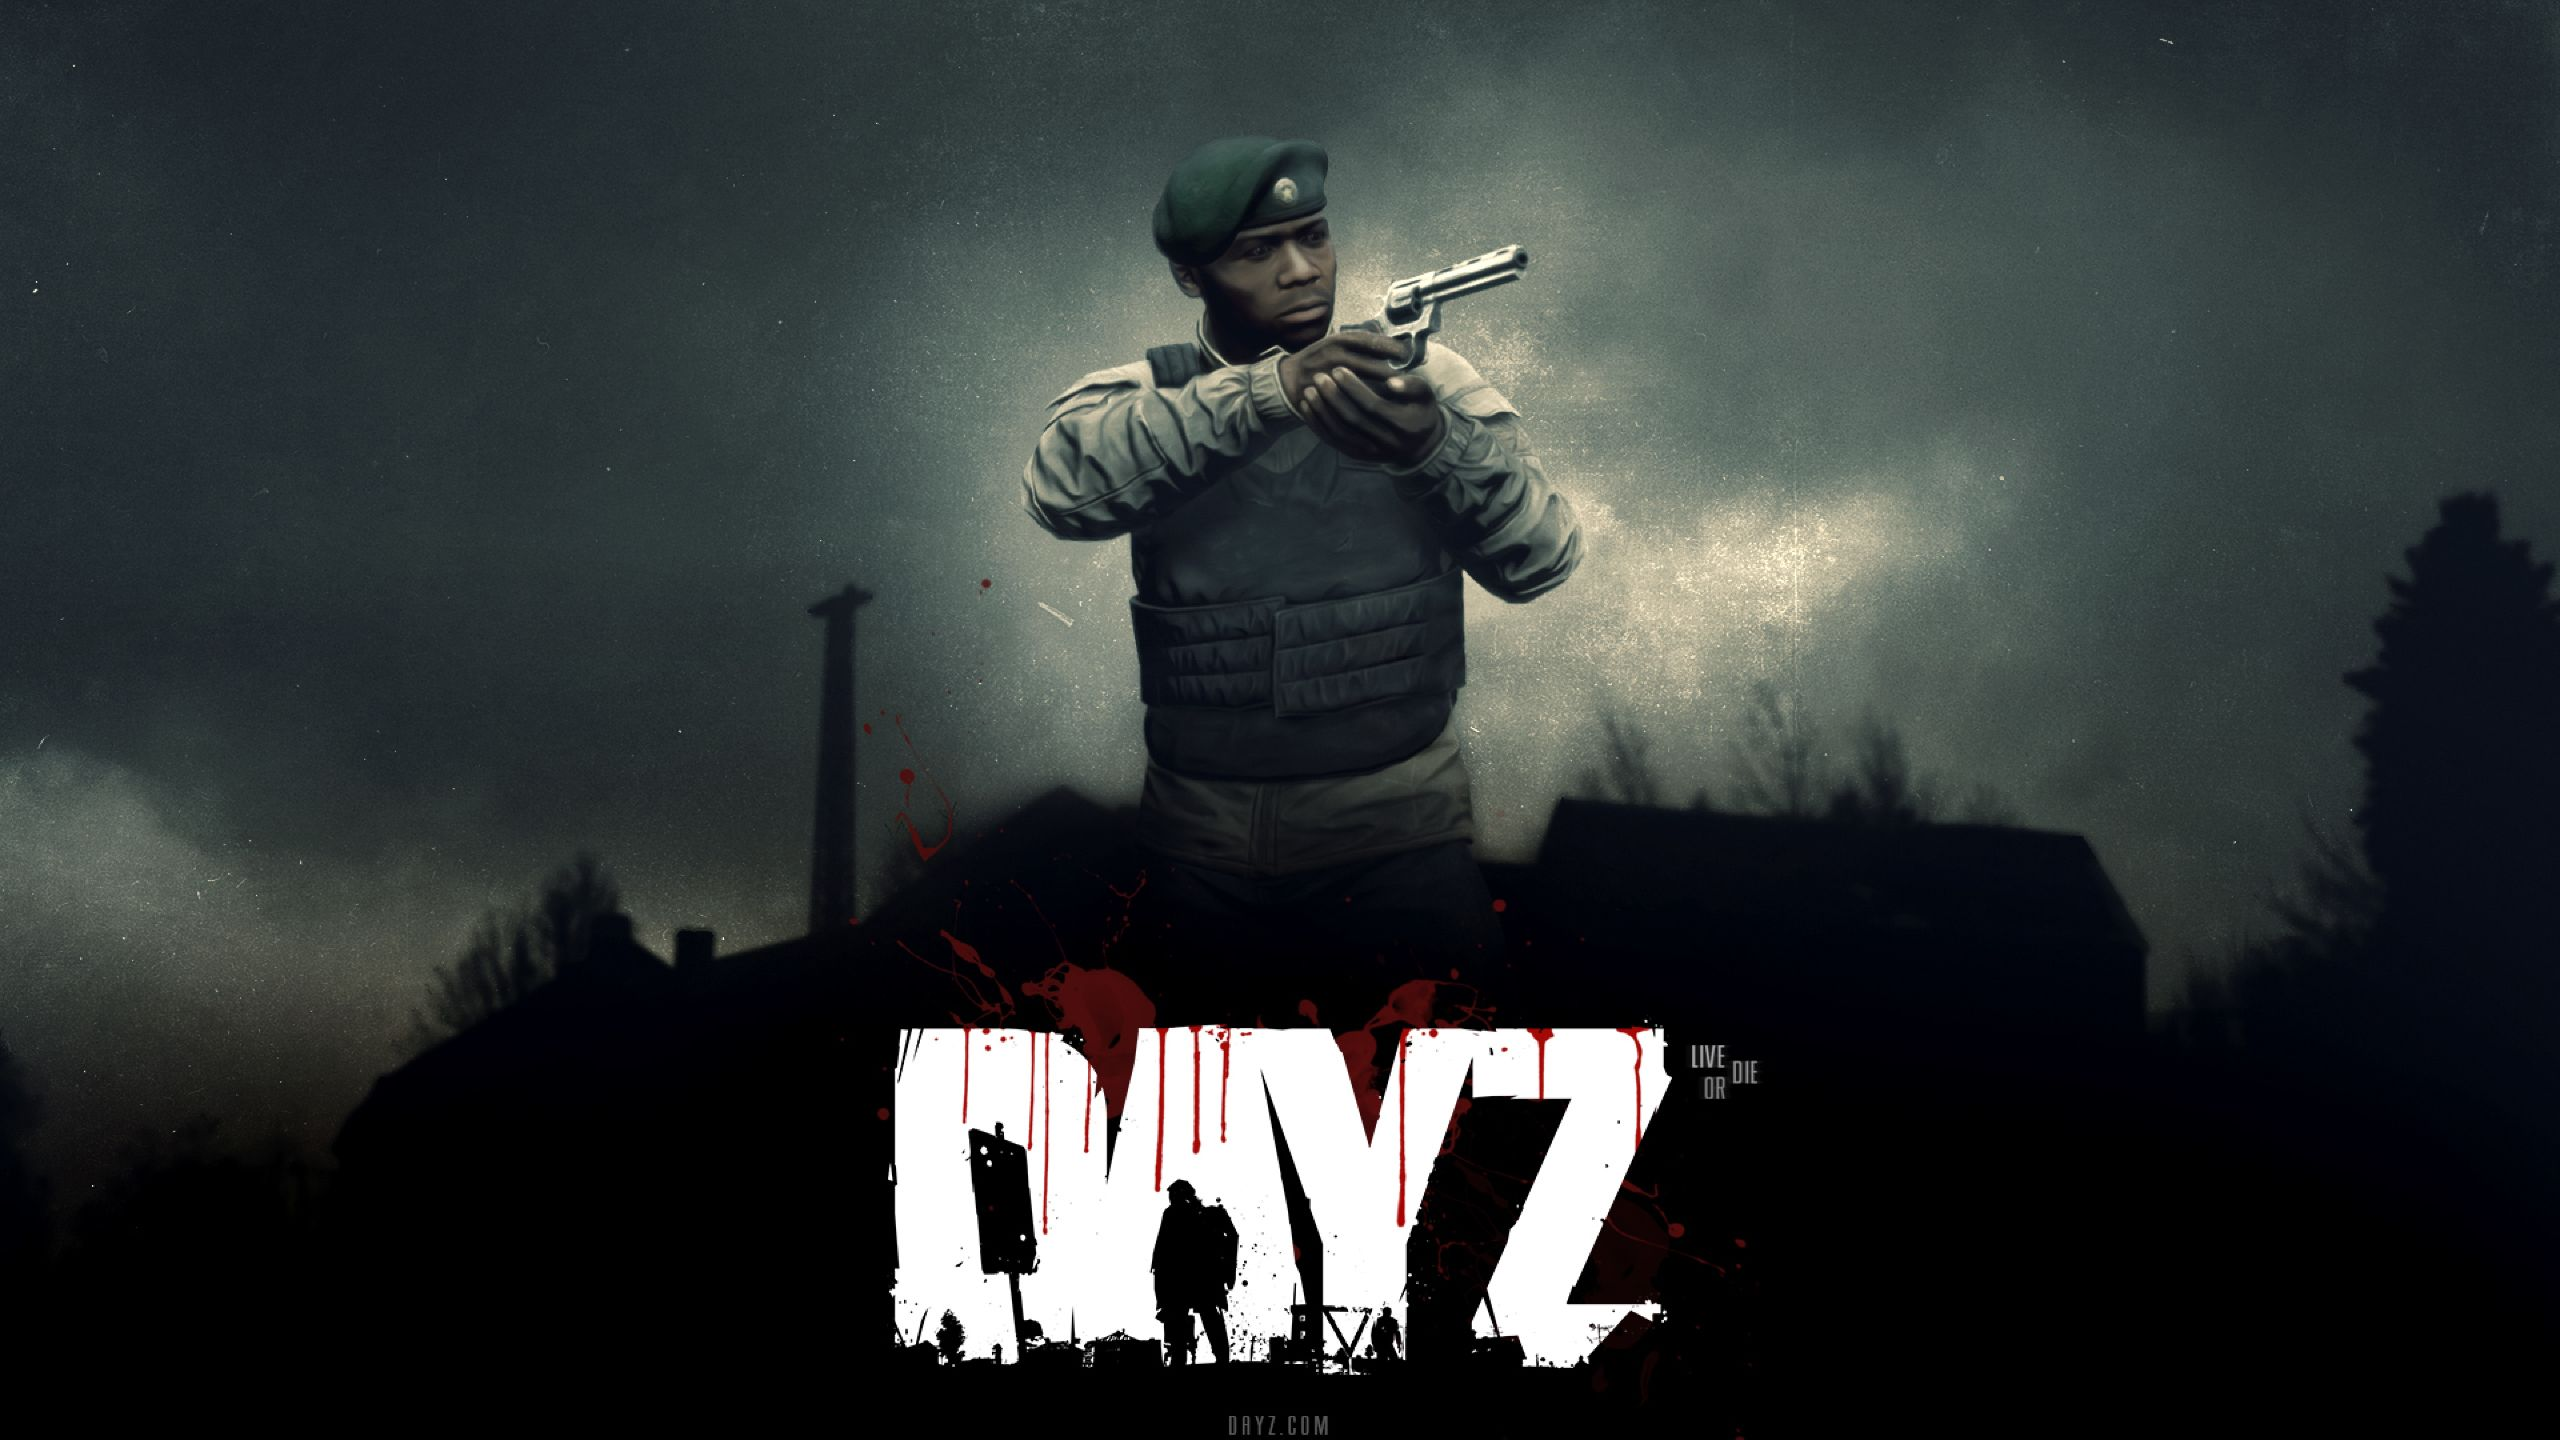 dayz funny wallpaper